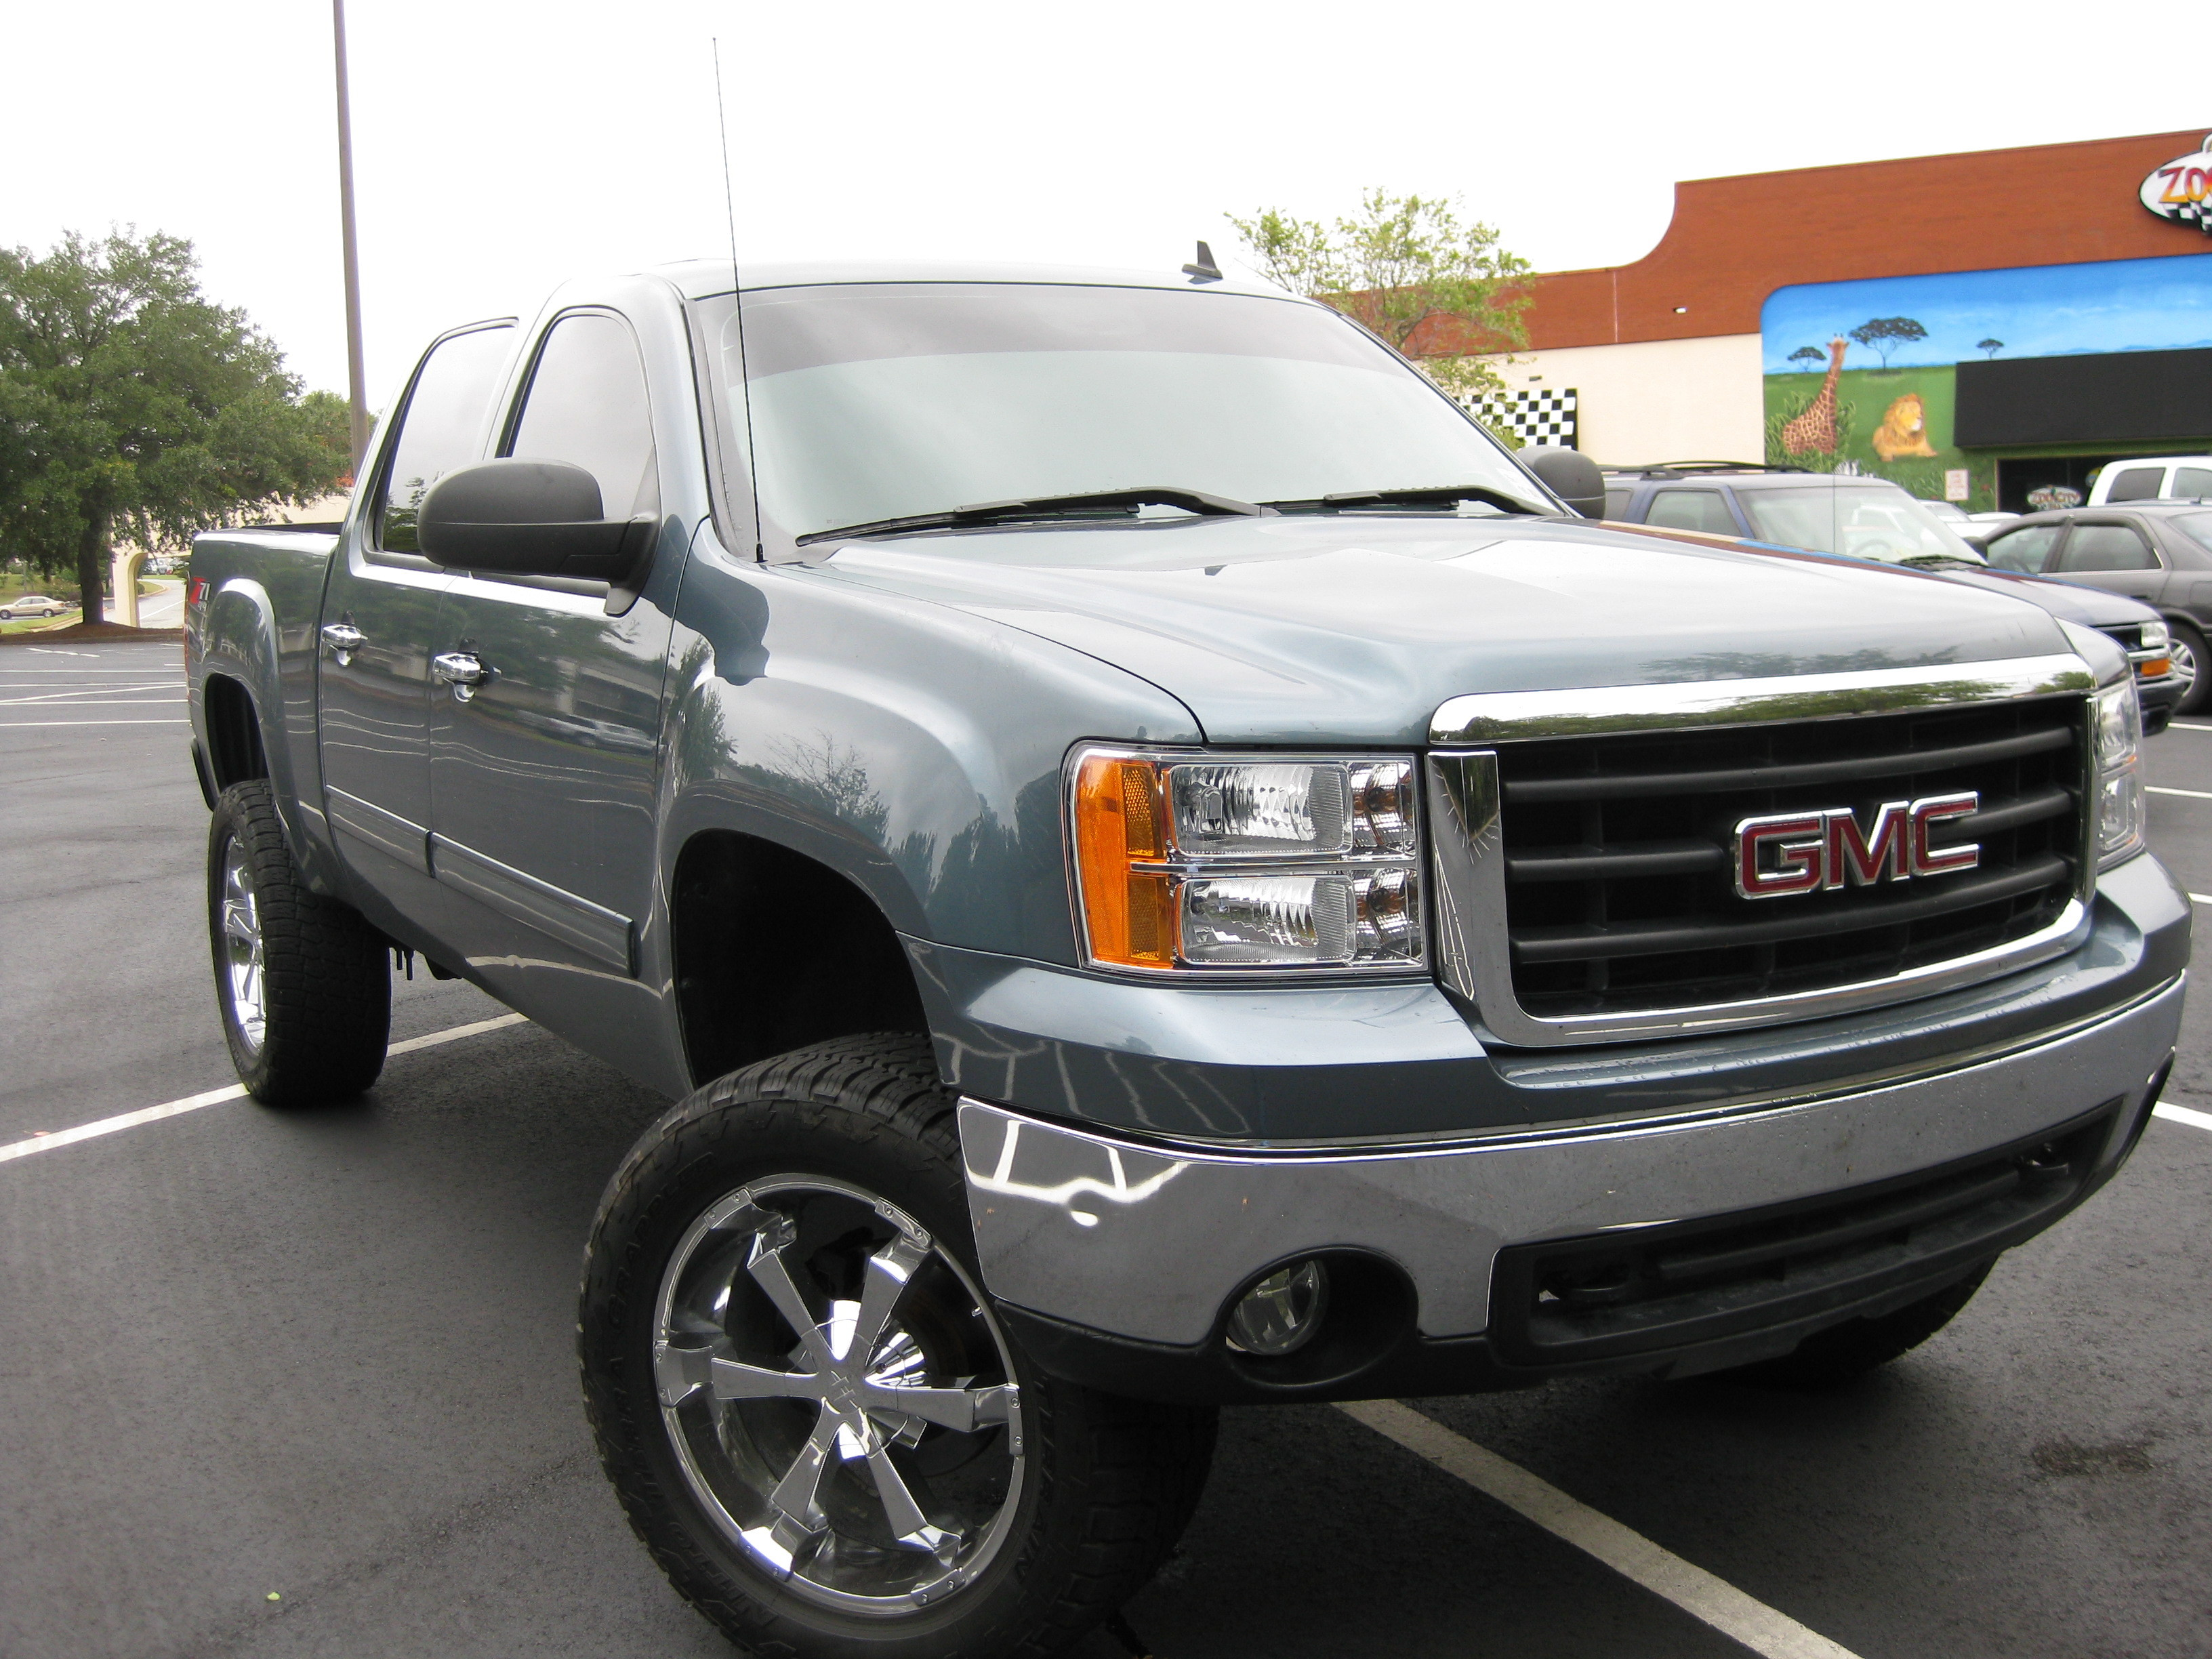 bad07gmc 2007 gmc sierra 1500 regular cab specs photos. Black Bedroom Furniture Sets. Home Design Ideas